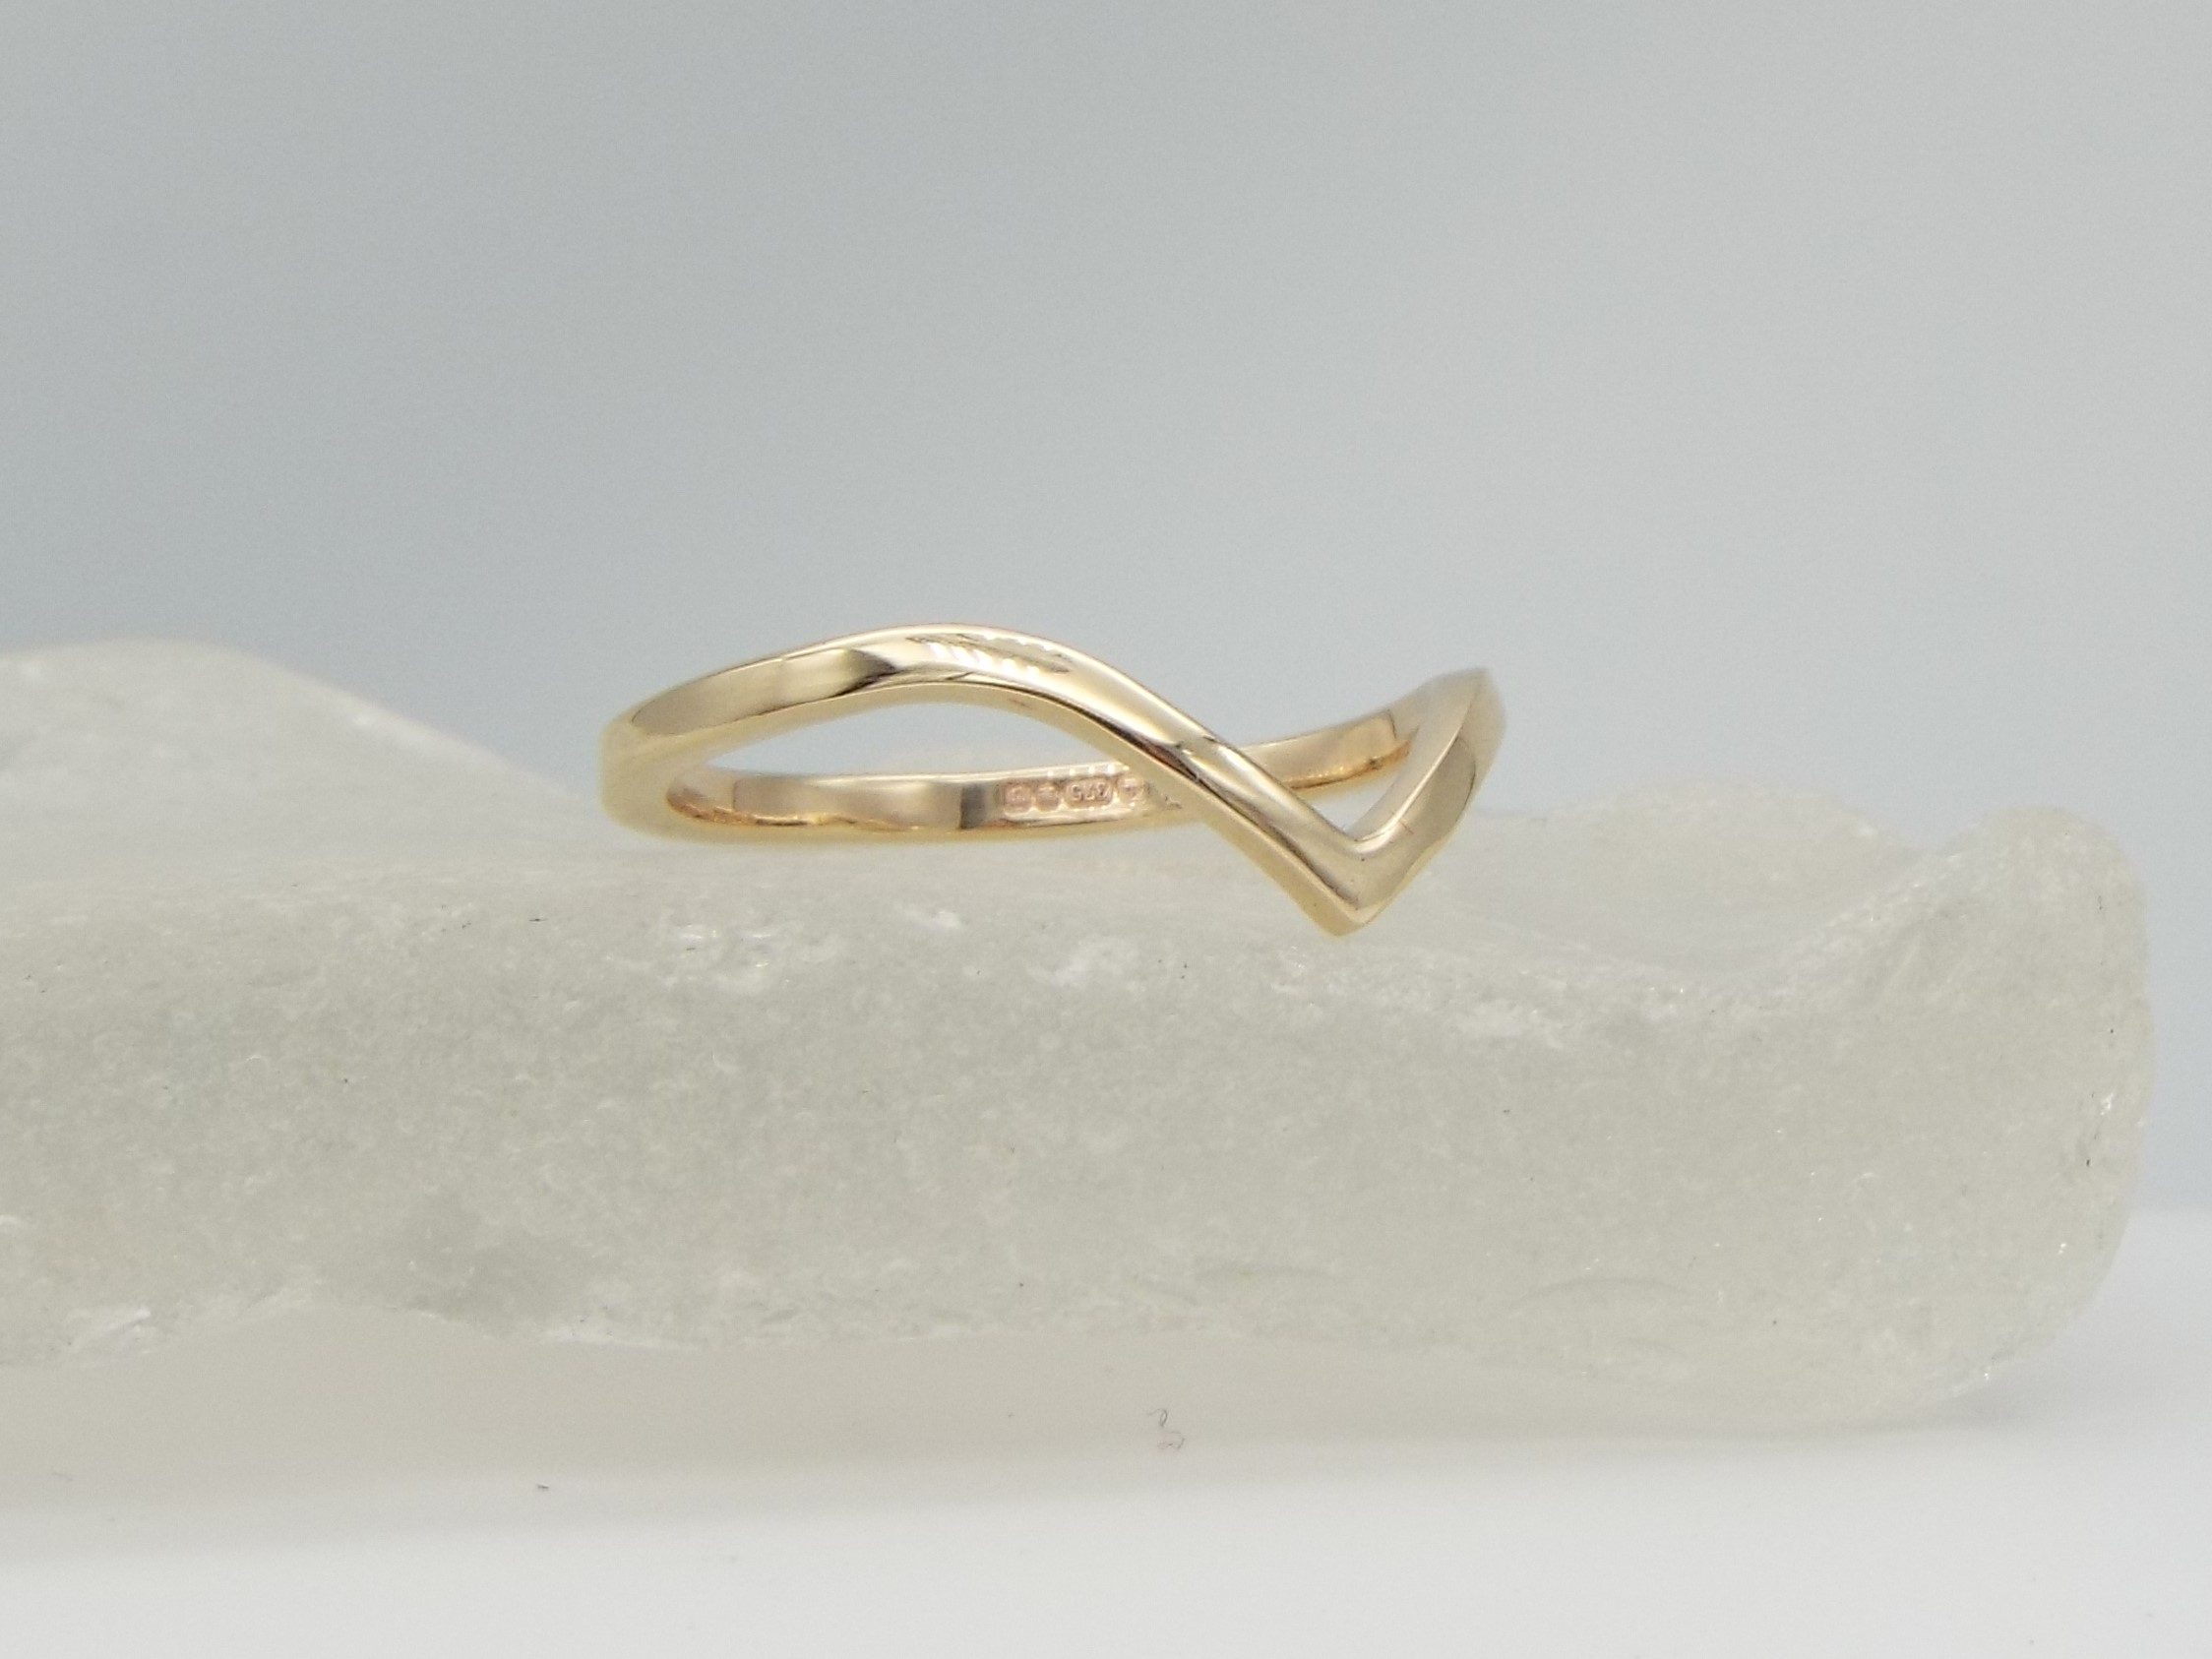 9ct Gold Chevron Ring